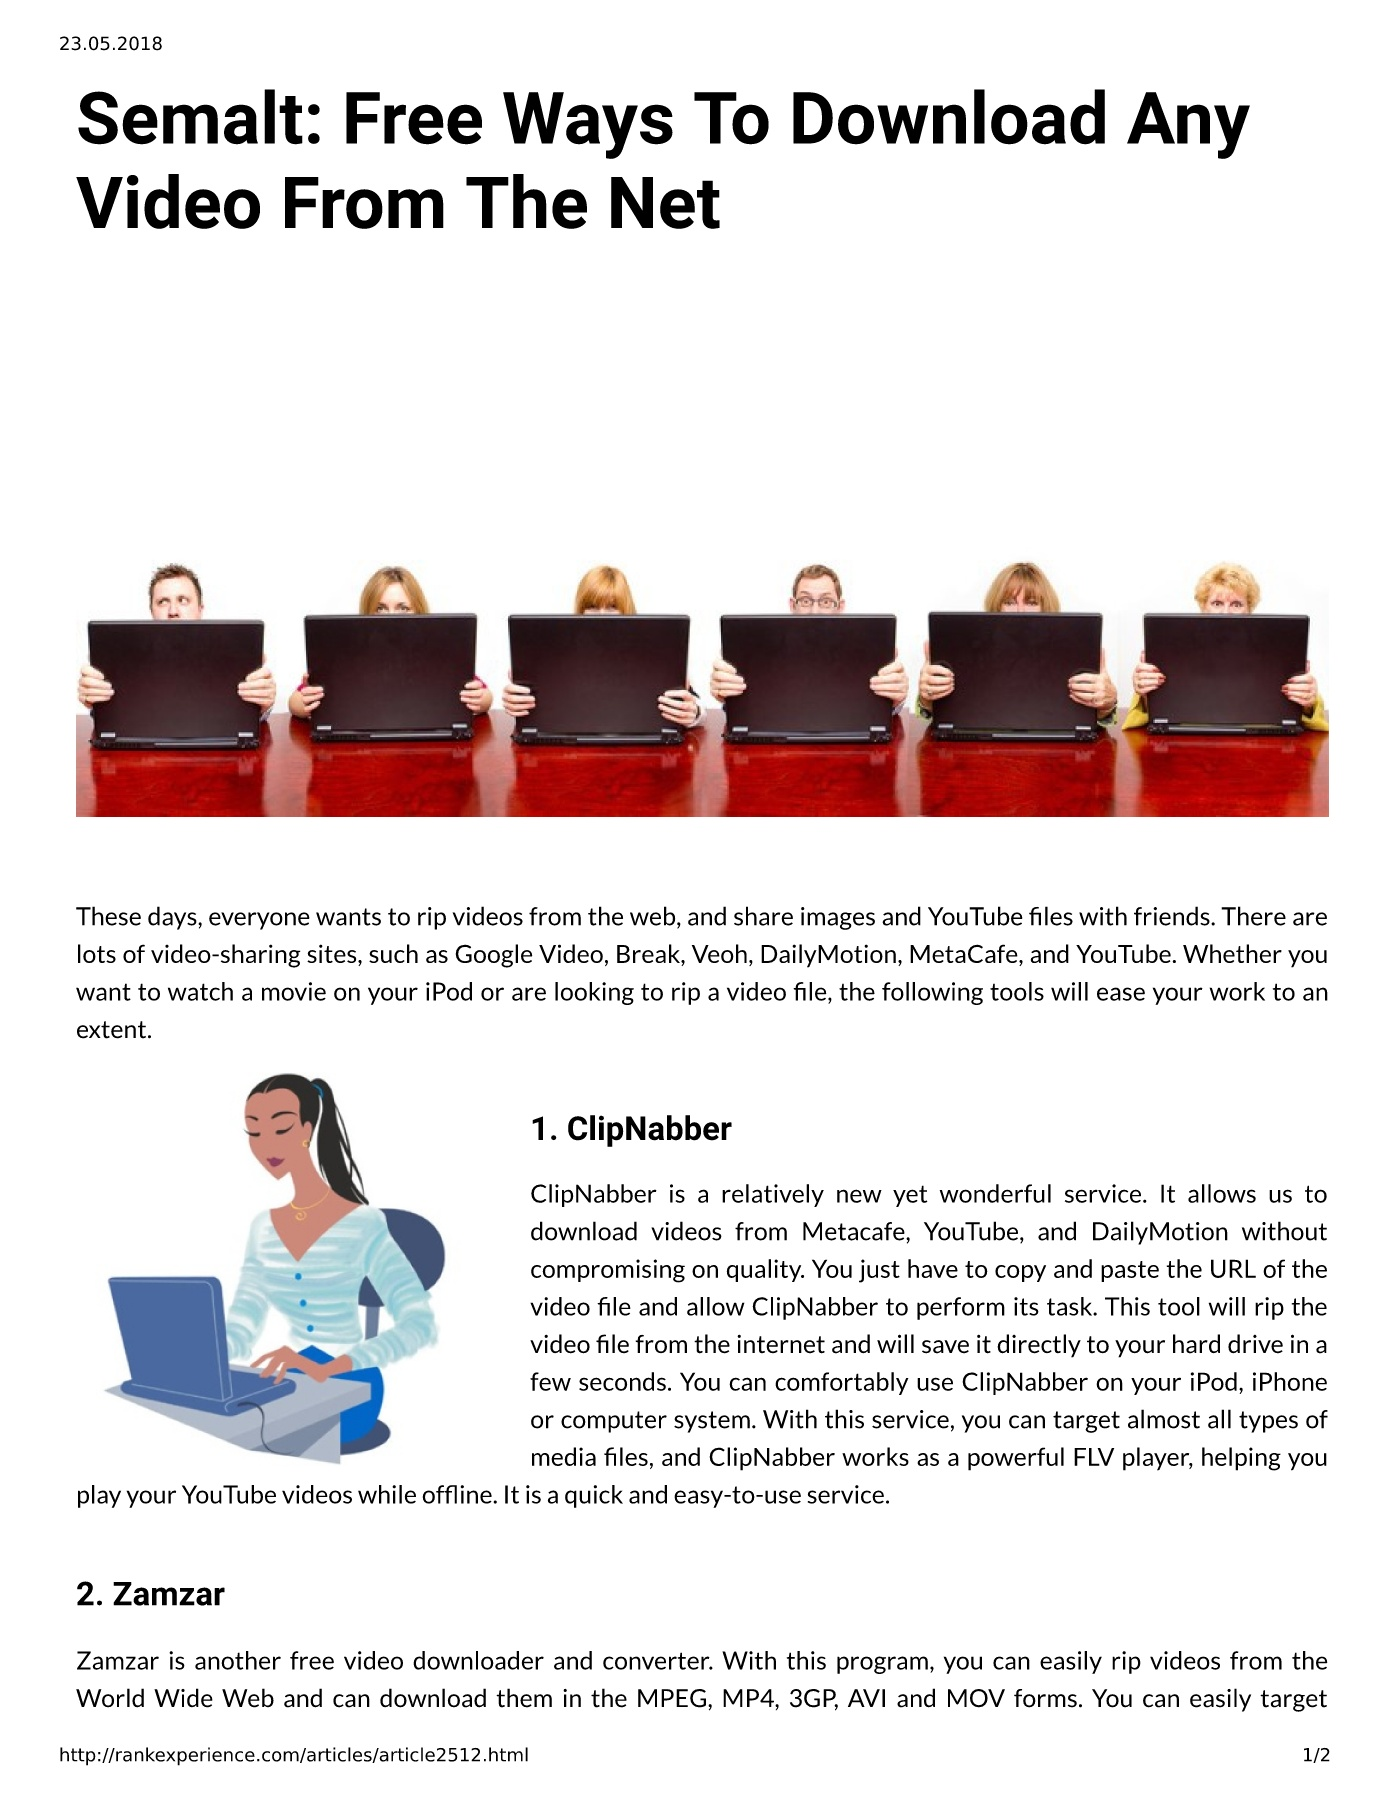 Semalt: Free Ways To Download Any Video From The Net Pages 1 - 2